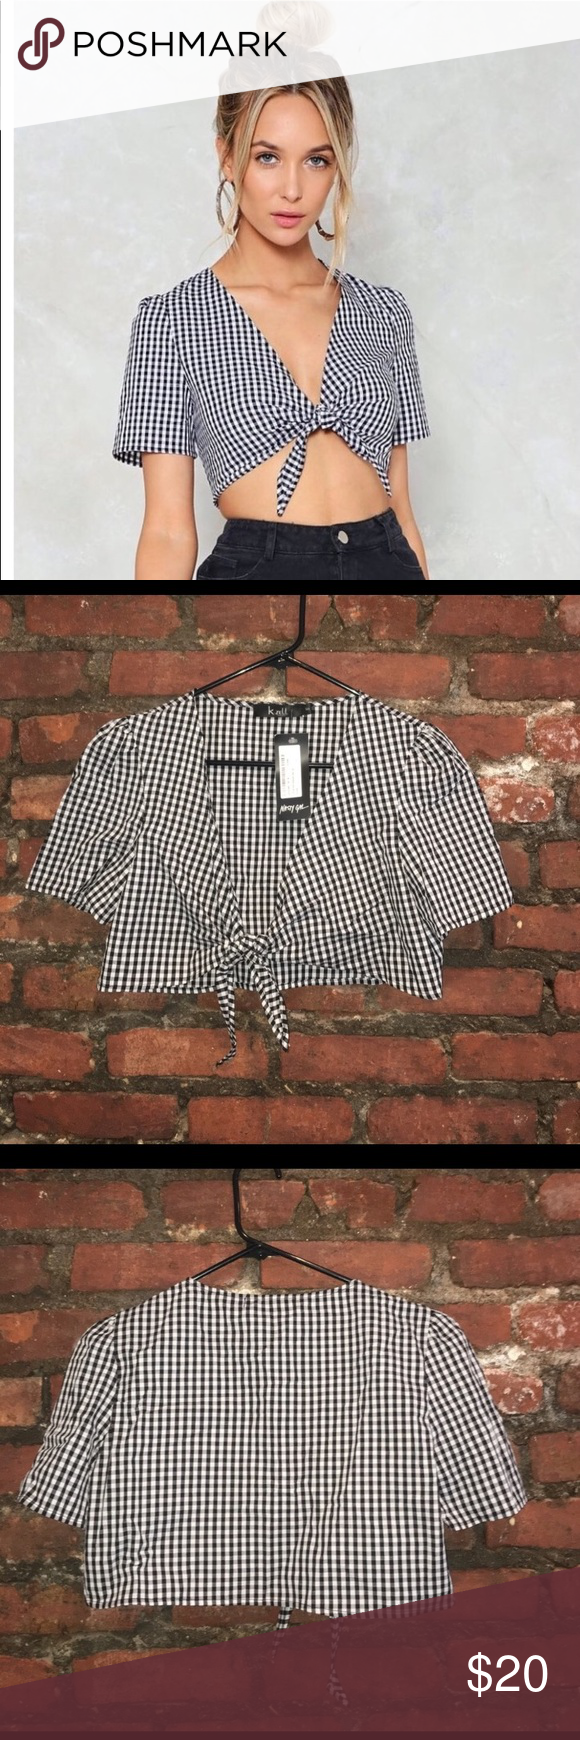 8e1a0c1ee23d0c Nasty Gal Off the Grid Gingham Crop Top NWT, Tie closure at front. Super  cute just too small for me ( Because I normally wear a medium not because  it runs ...